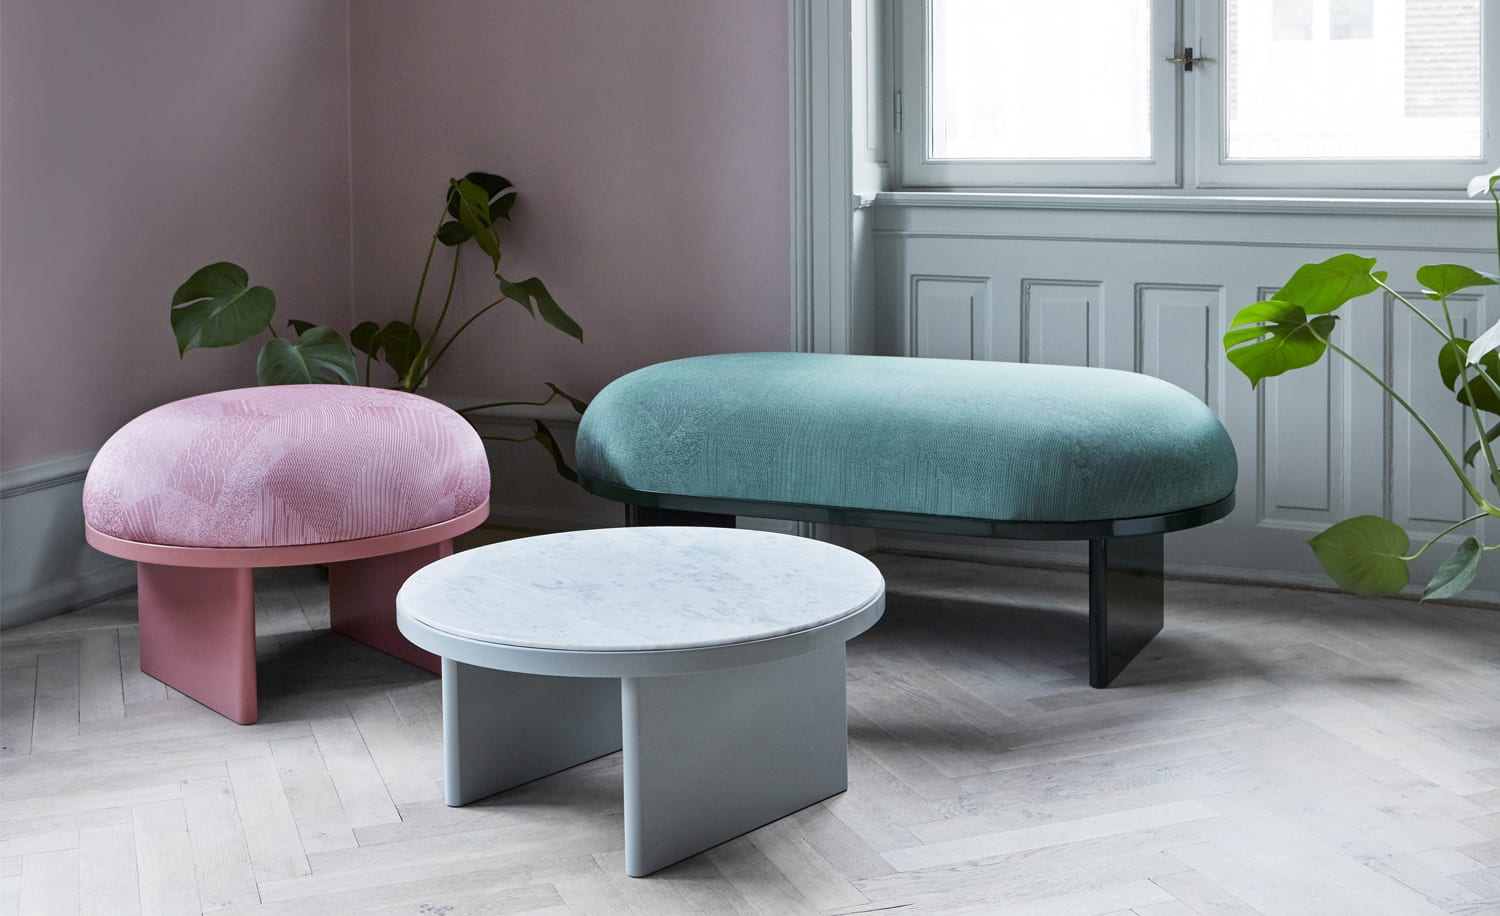 Anza Collection by Please wait to be seated at Imm Cologne 2019   Yellowtrace